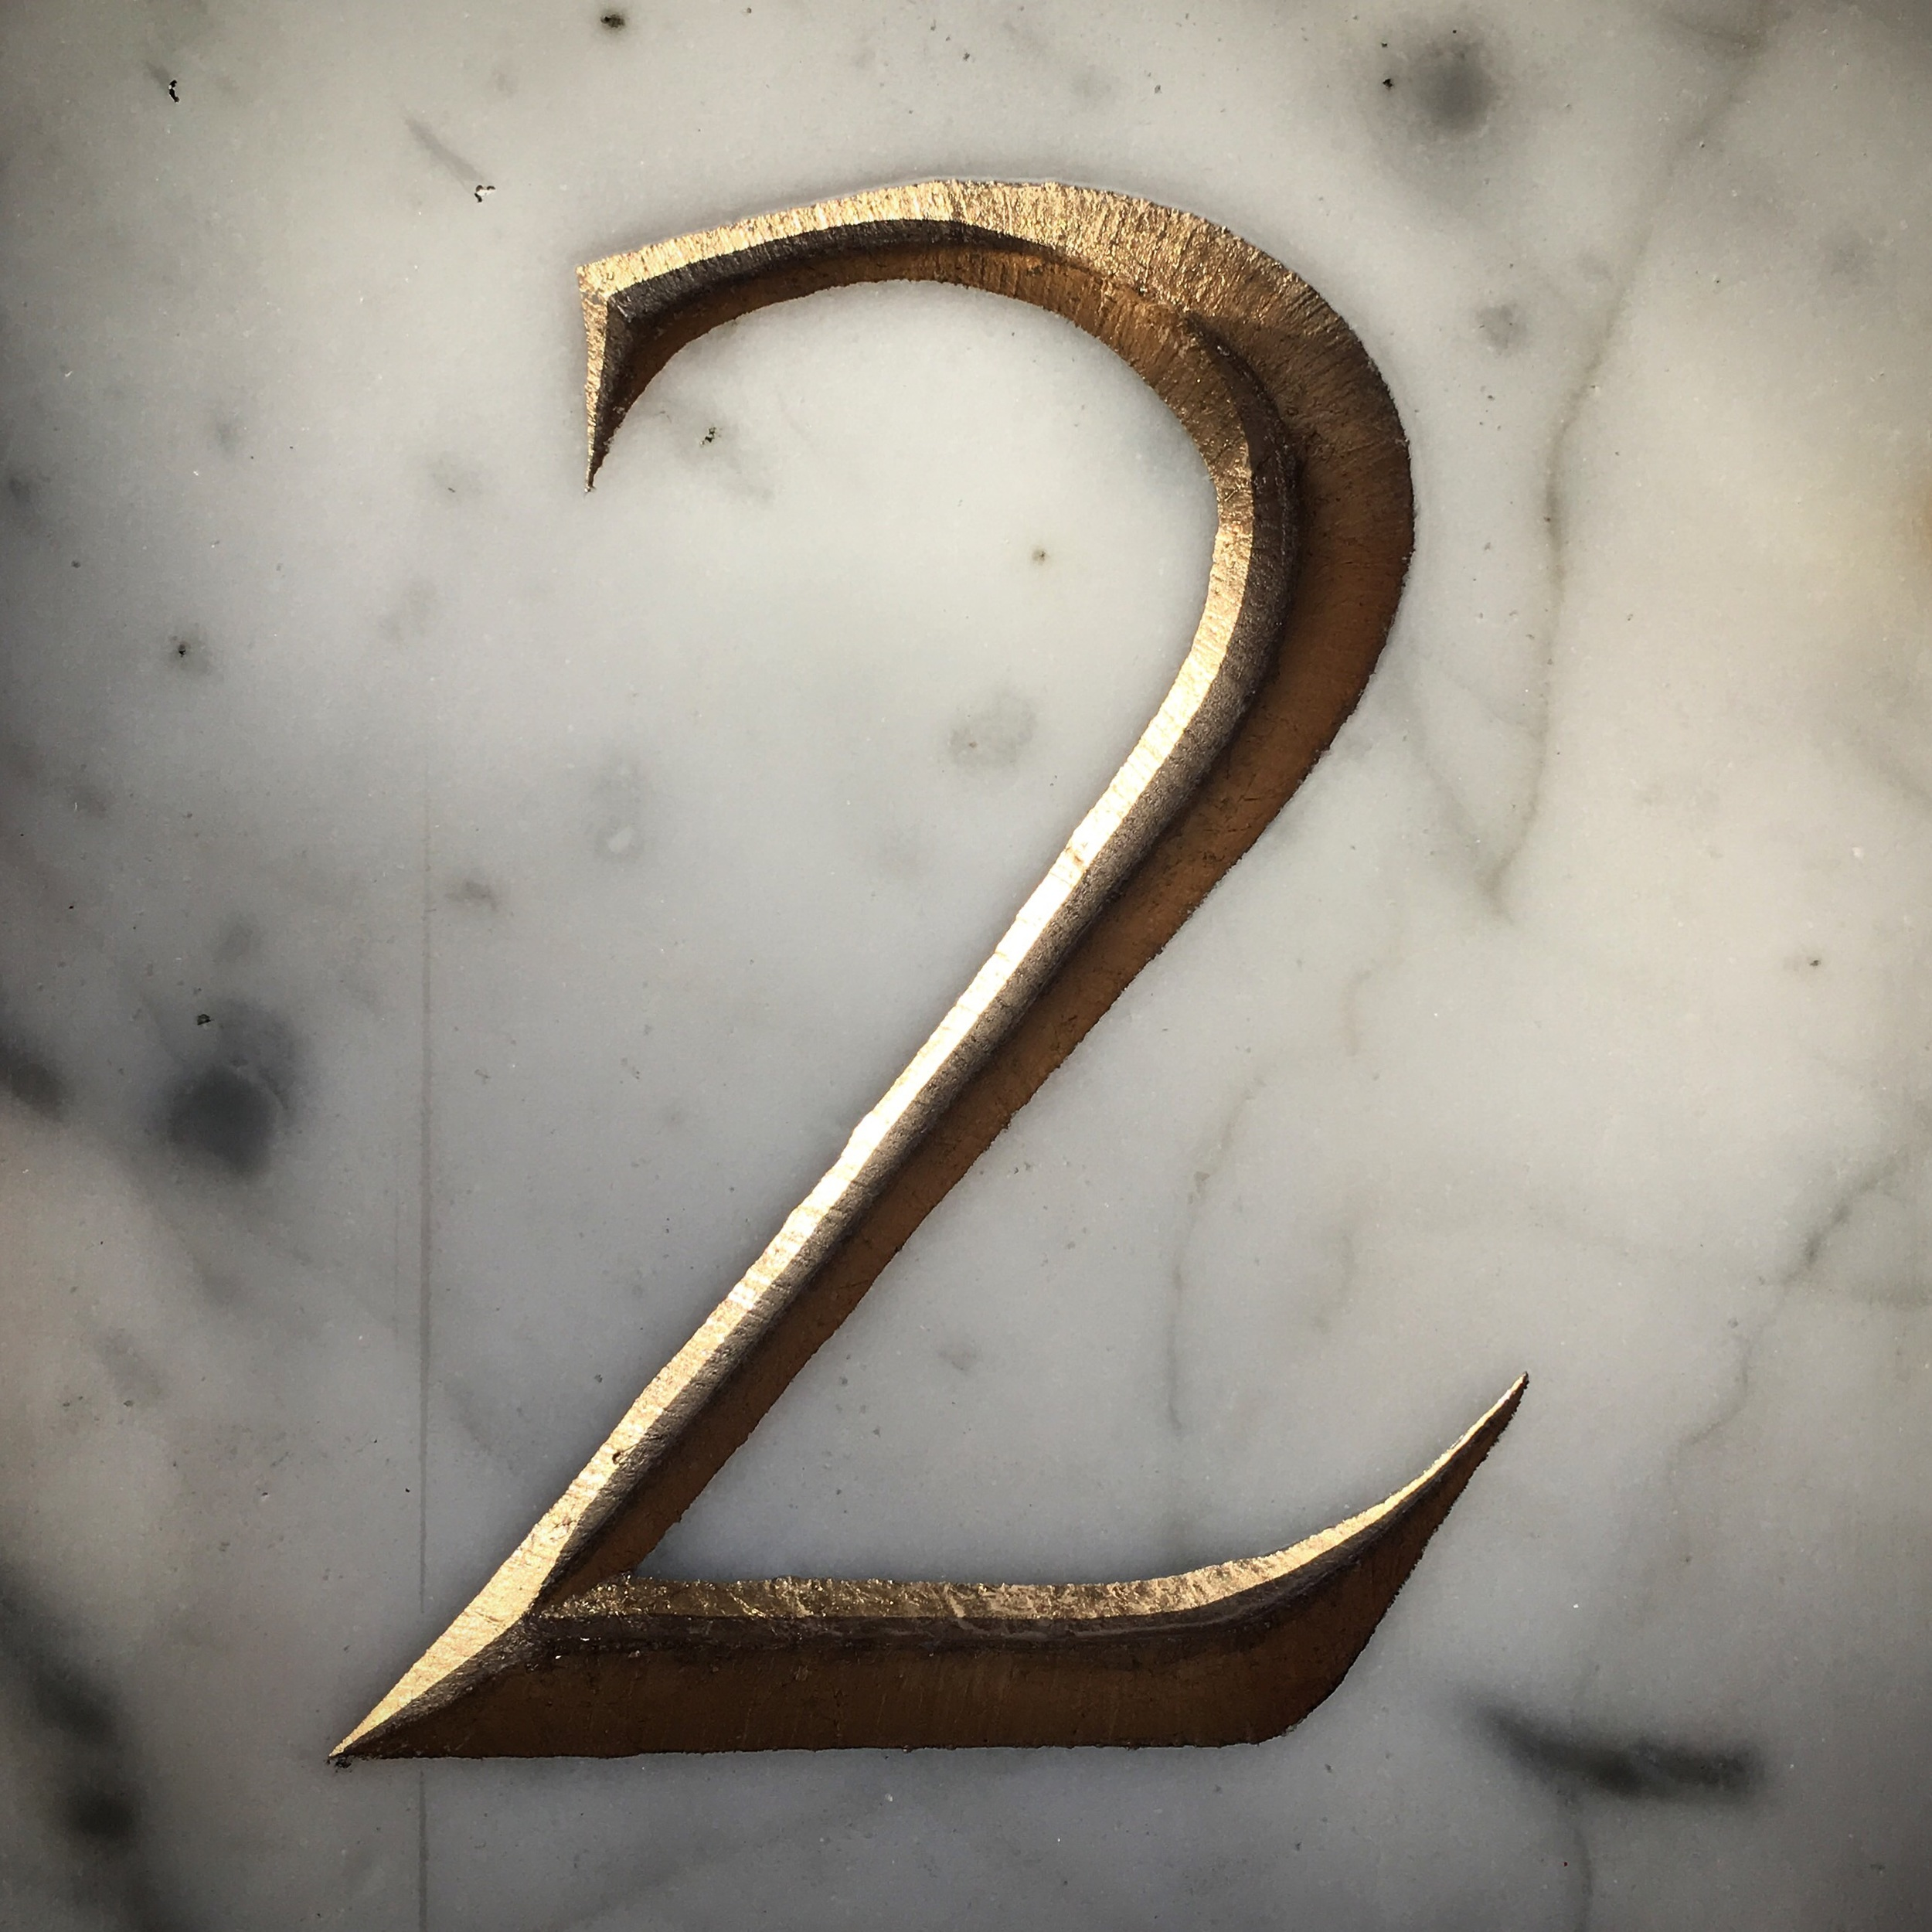 Roman Numeral 2 carved in Italian Carrara Marble & Gilded with 23ct Gold leaf.